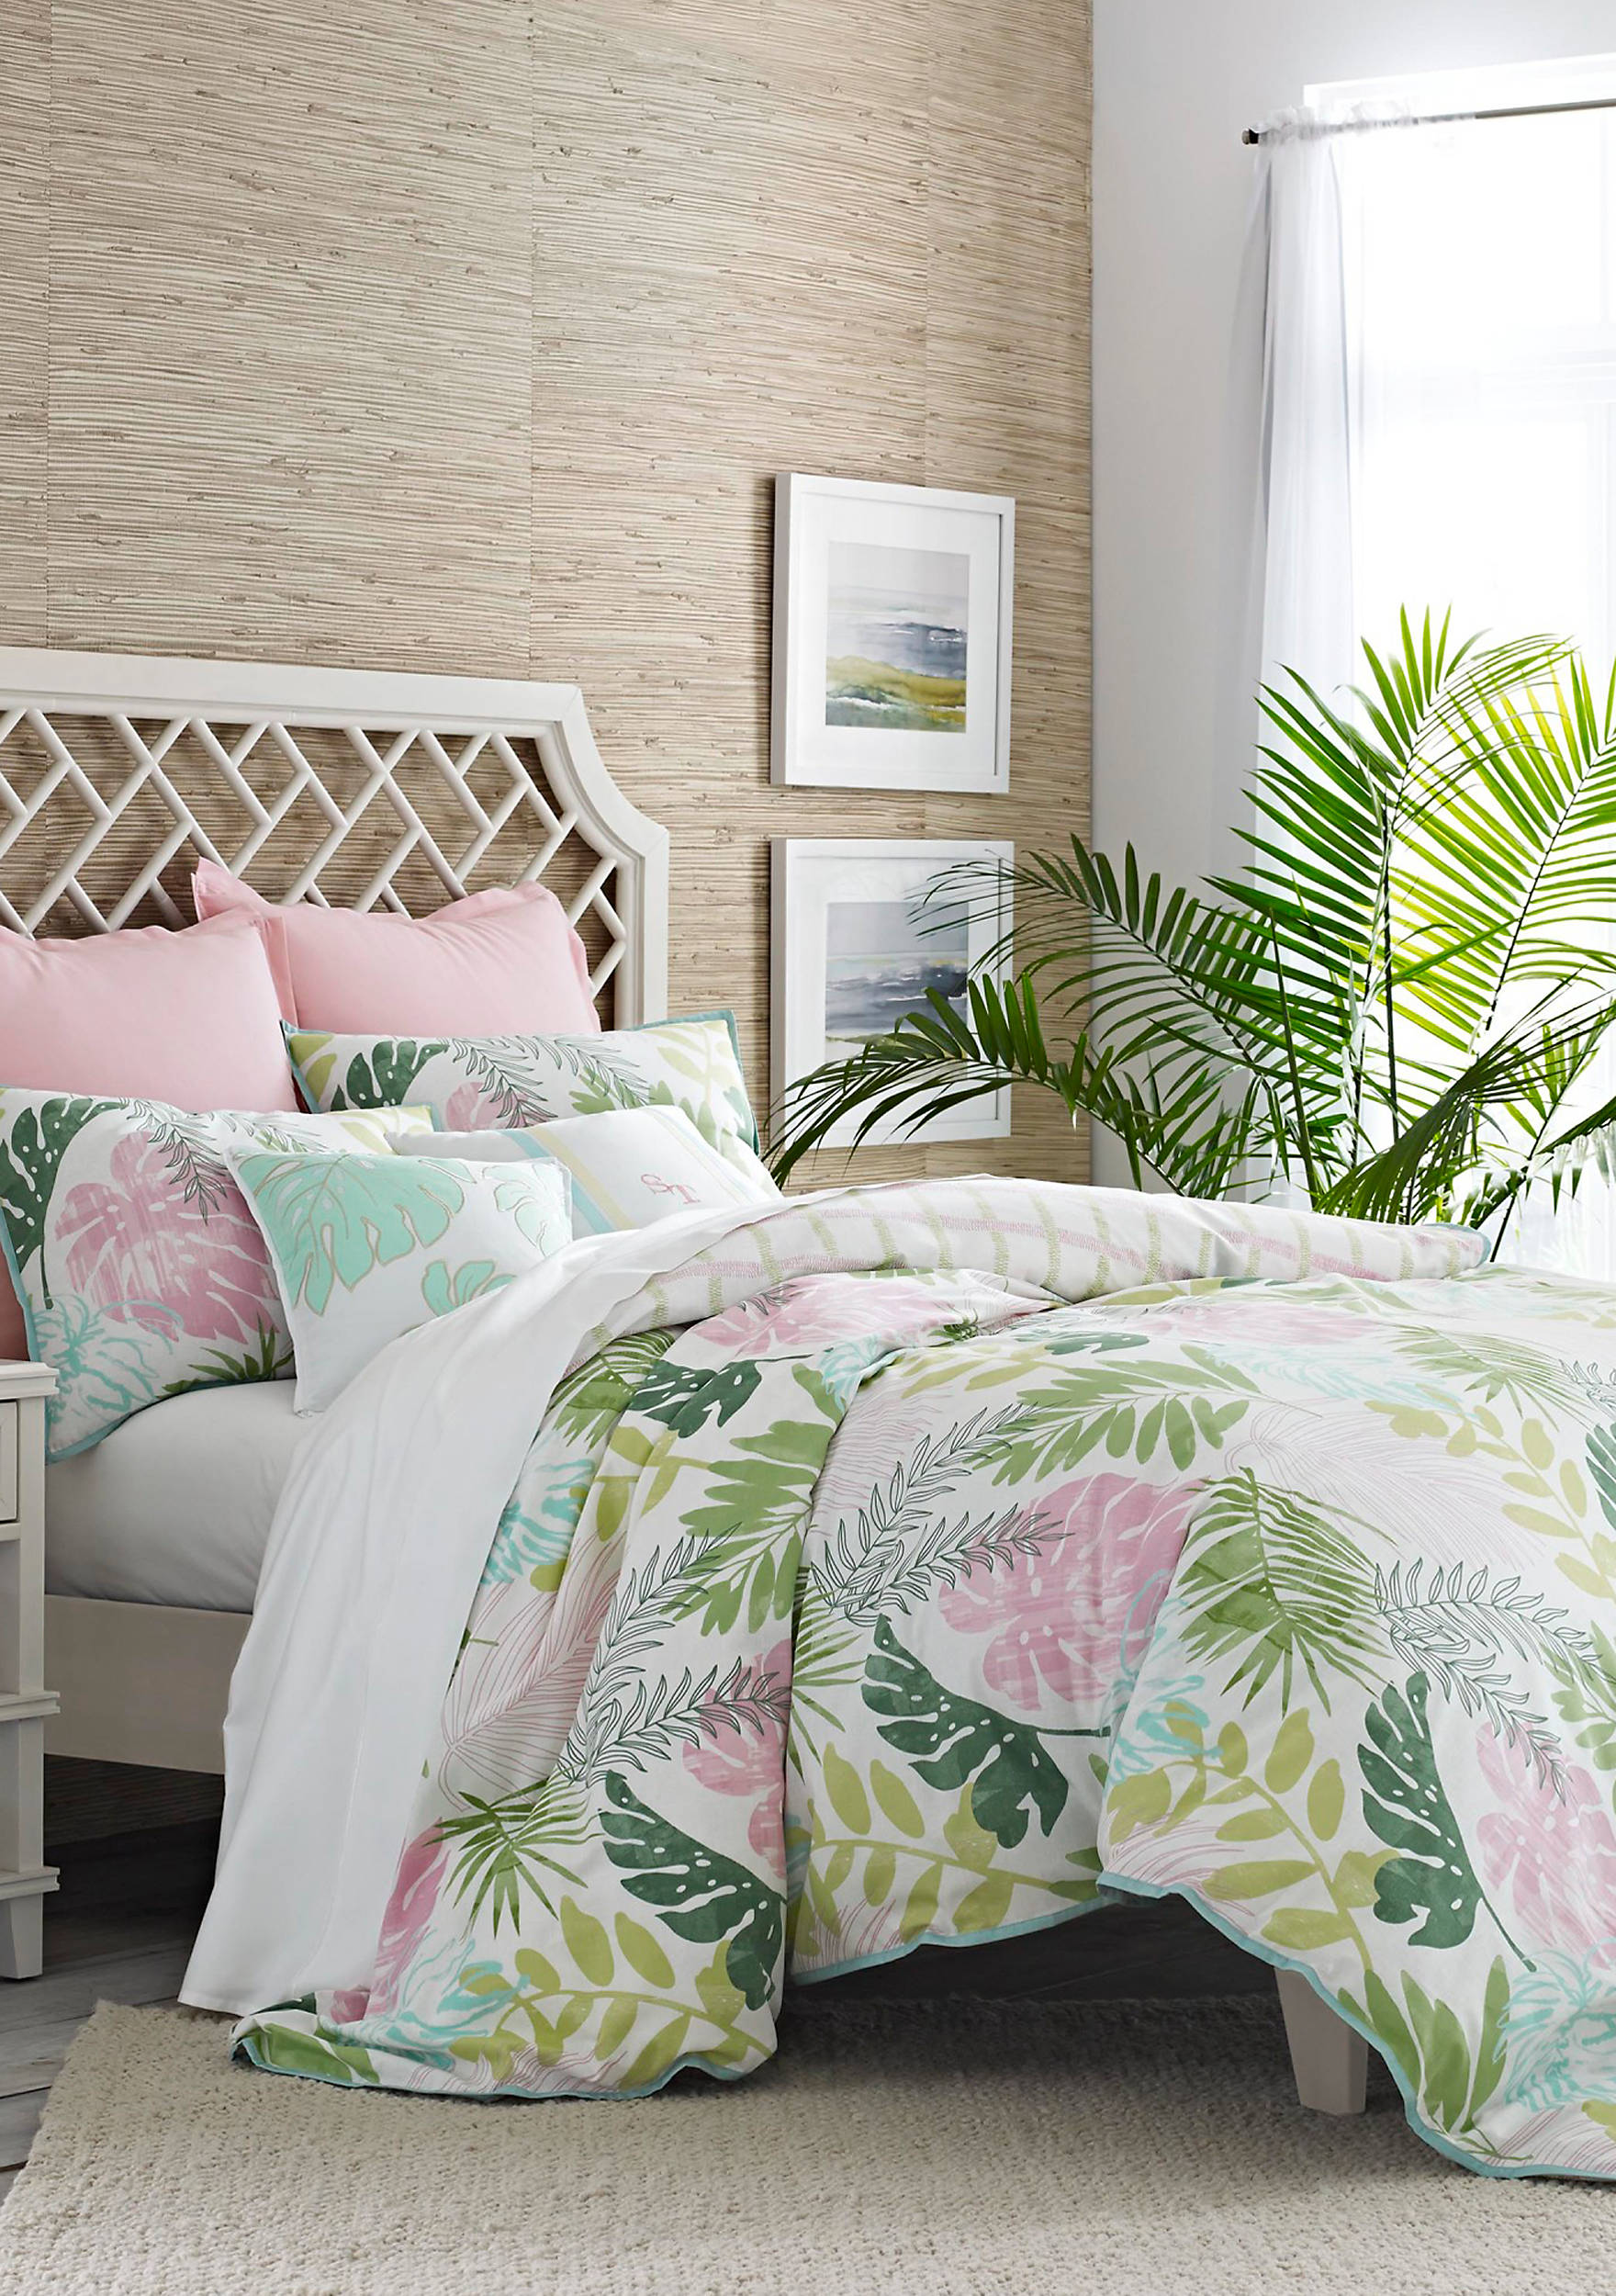 shipping maritime tide bedding free comforter southern today product duvet cover overstock bath